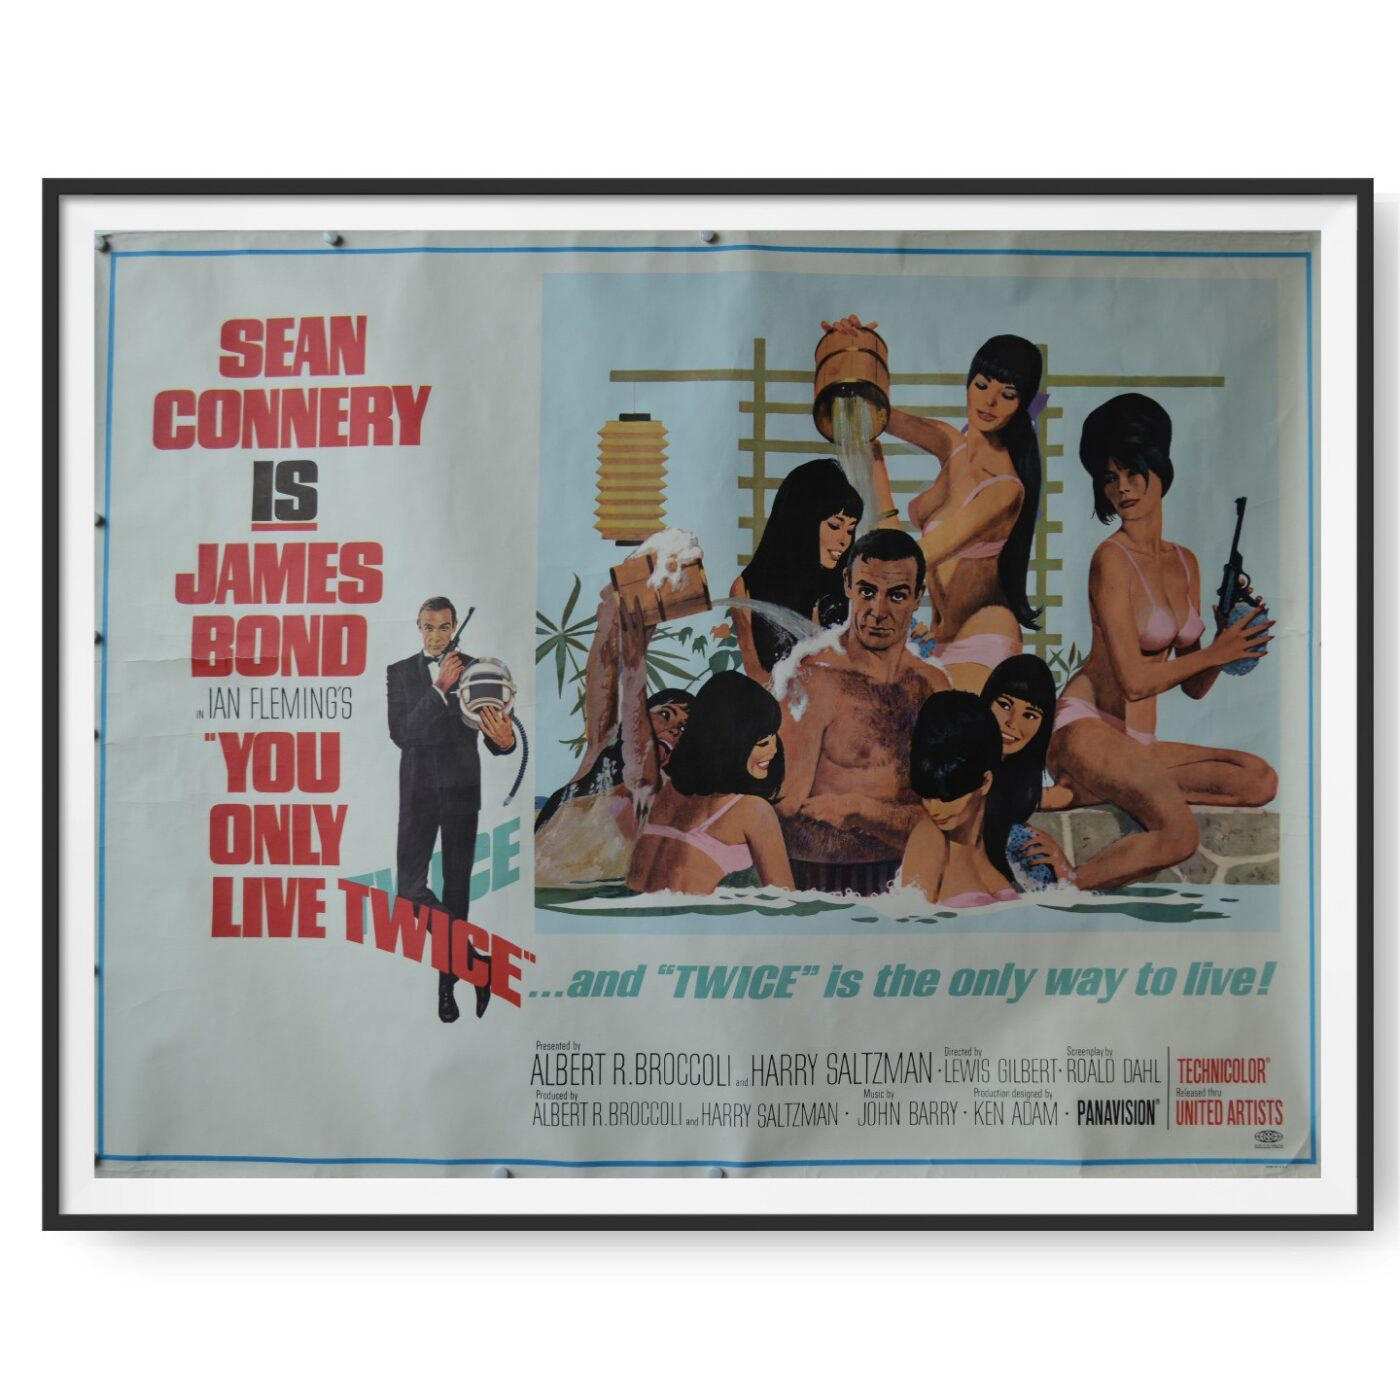 Image shows a US subway cinema poster for You Only Live Twice. It shows Sean Connery as James Bond in a bath